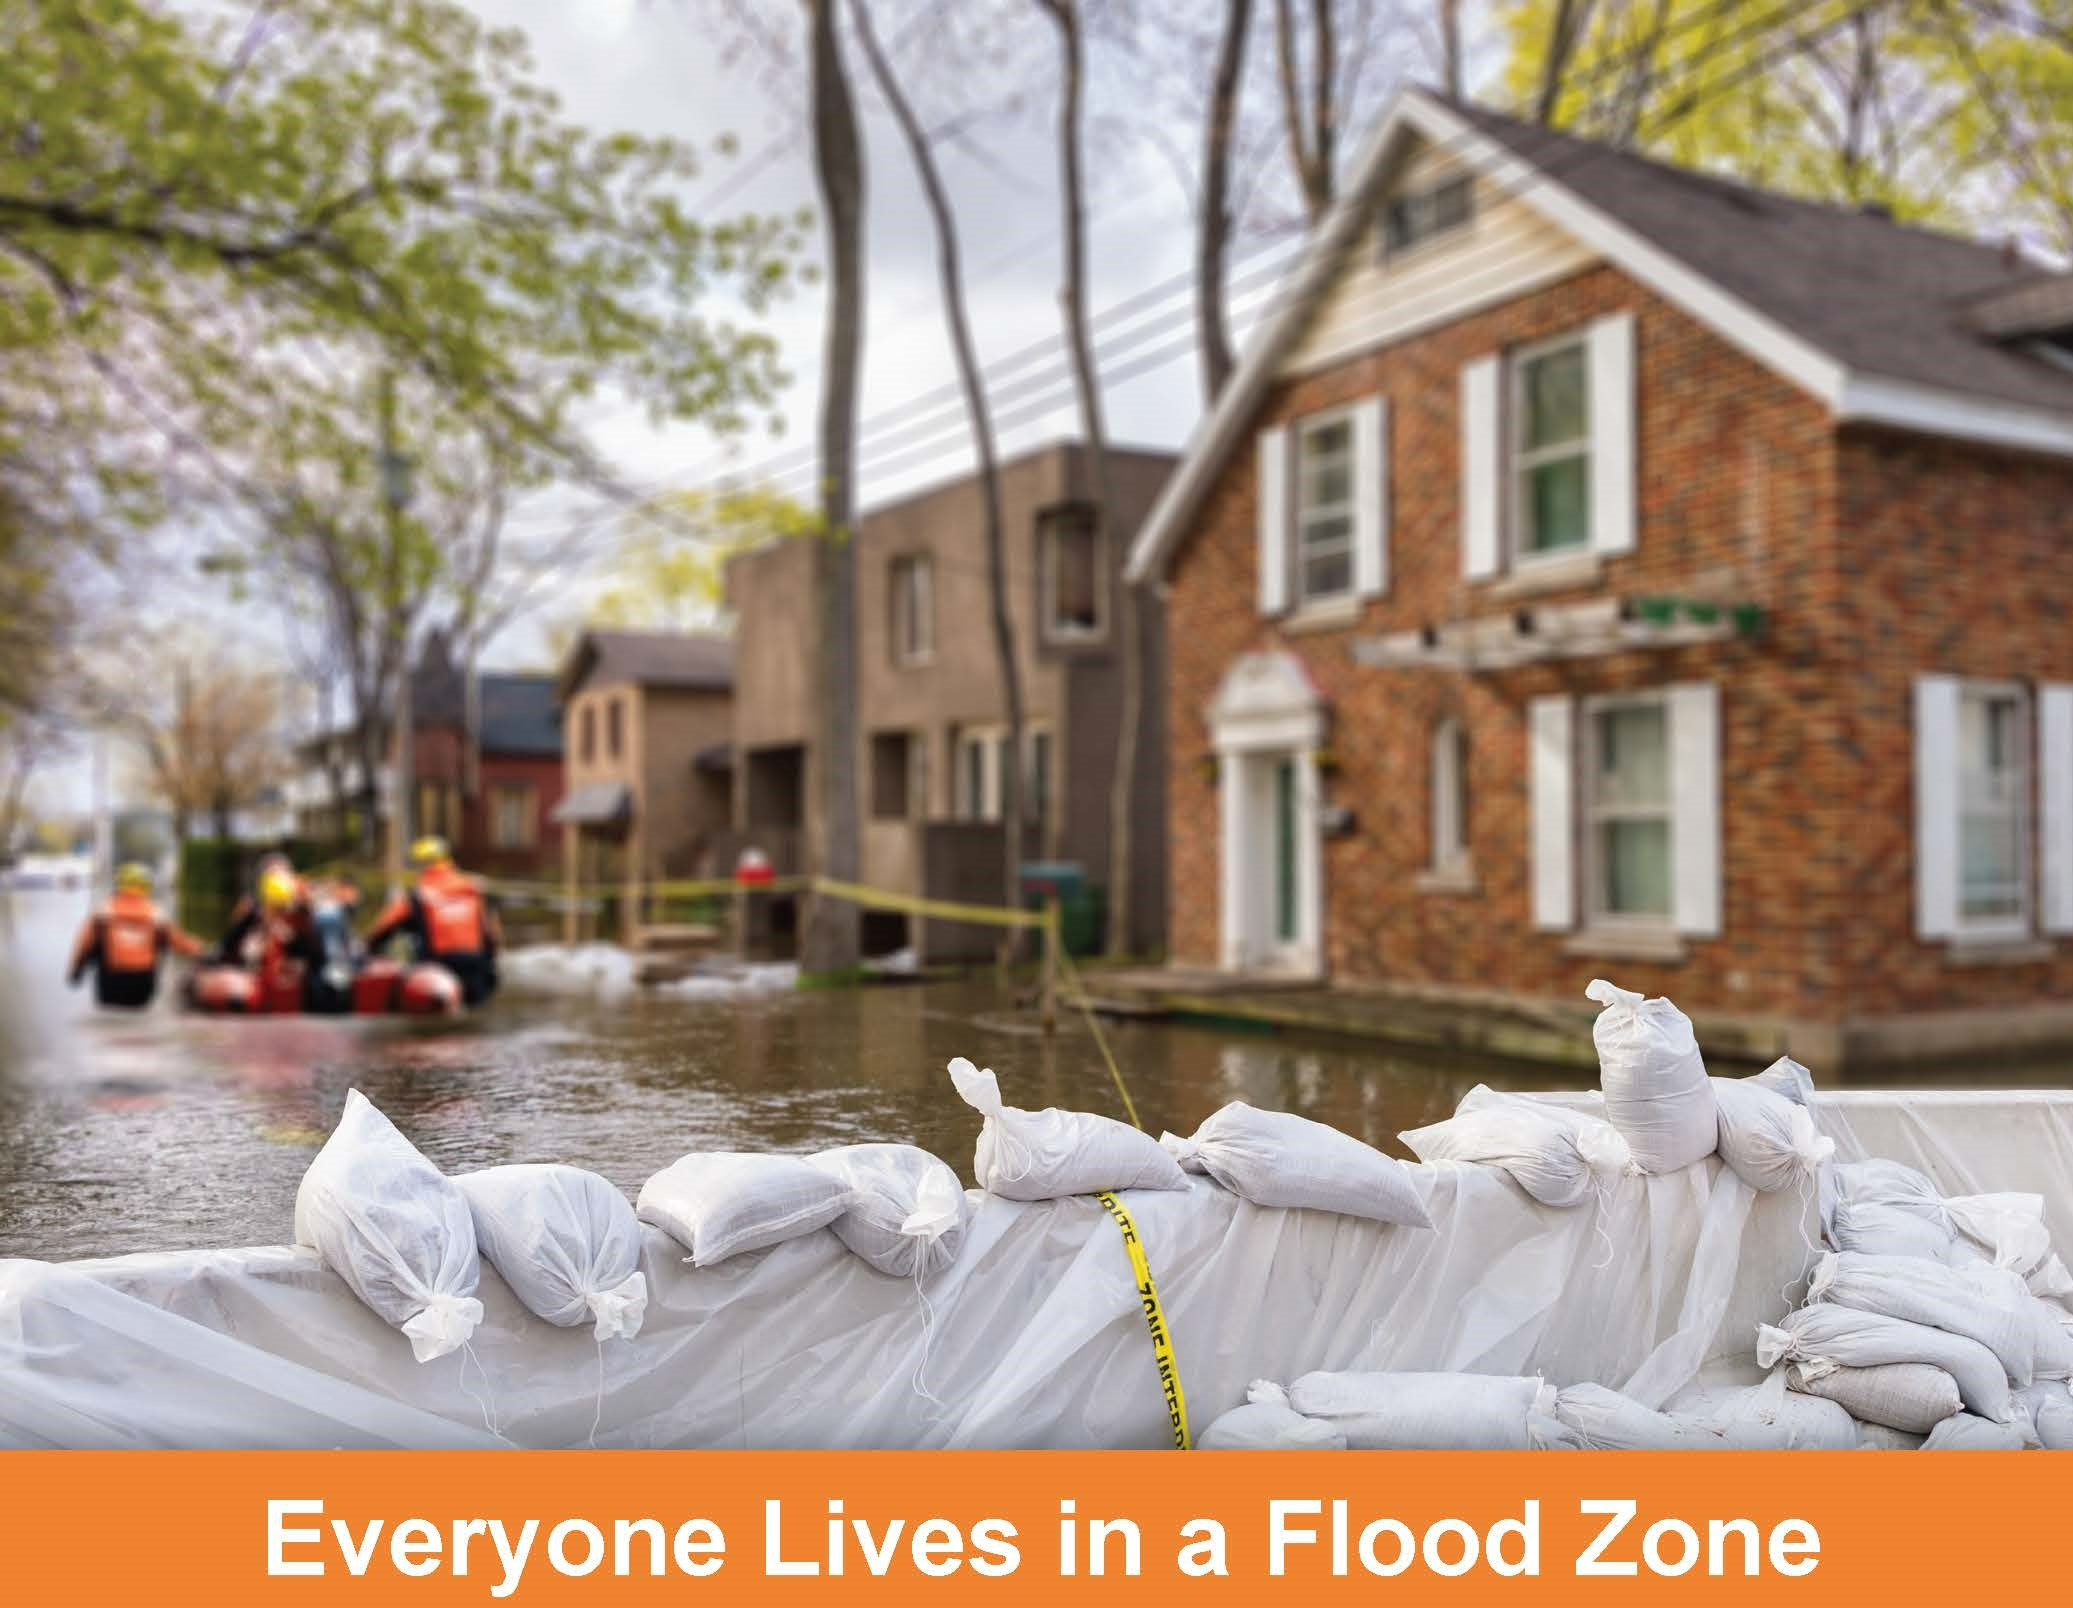 Flooded street with homes